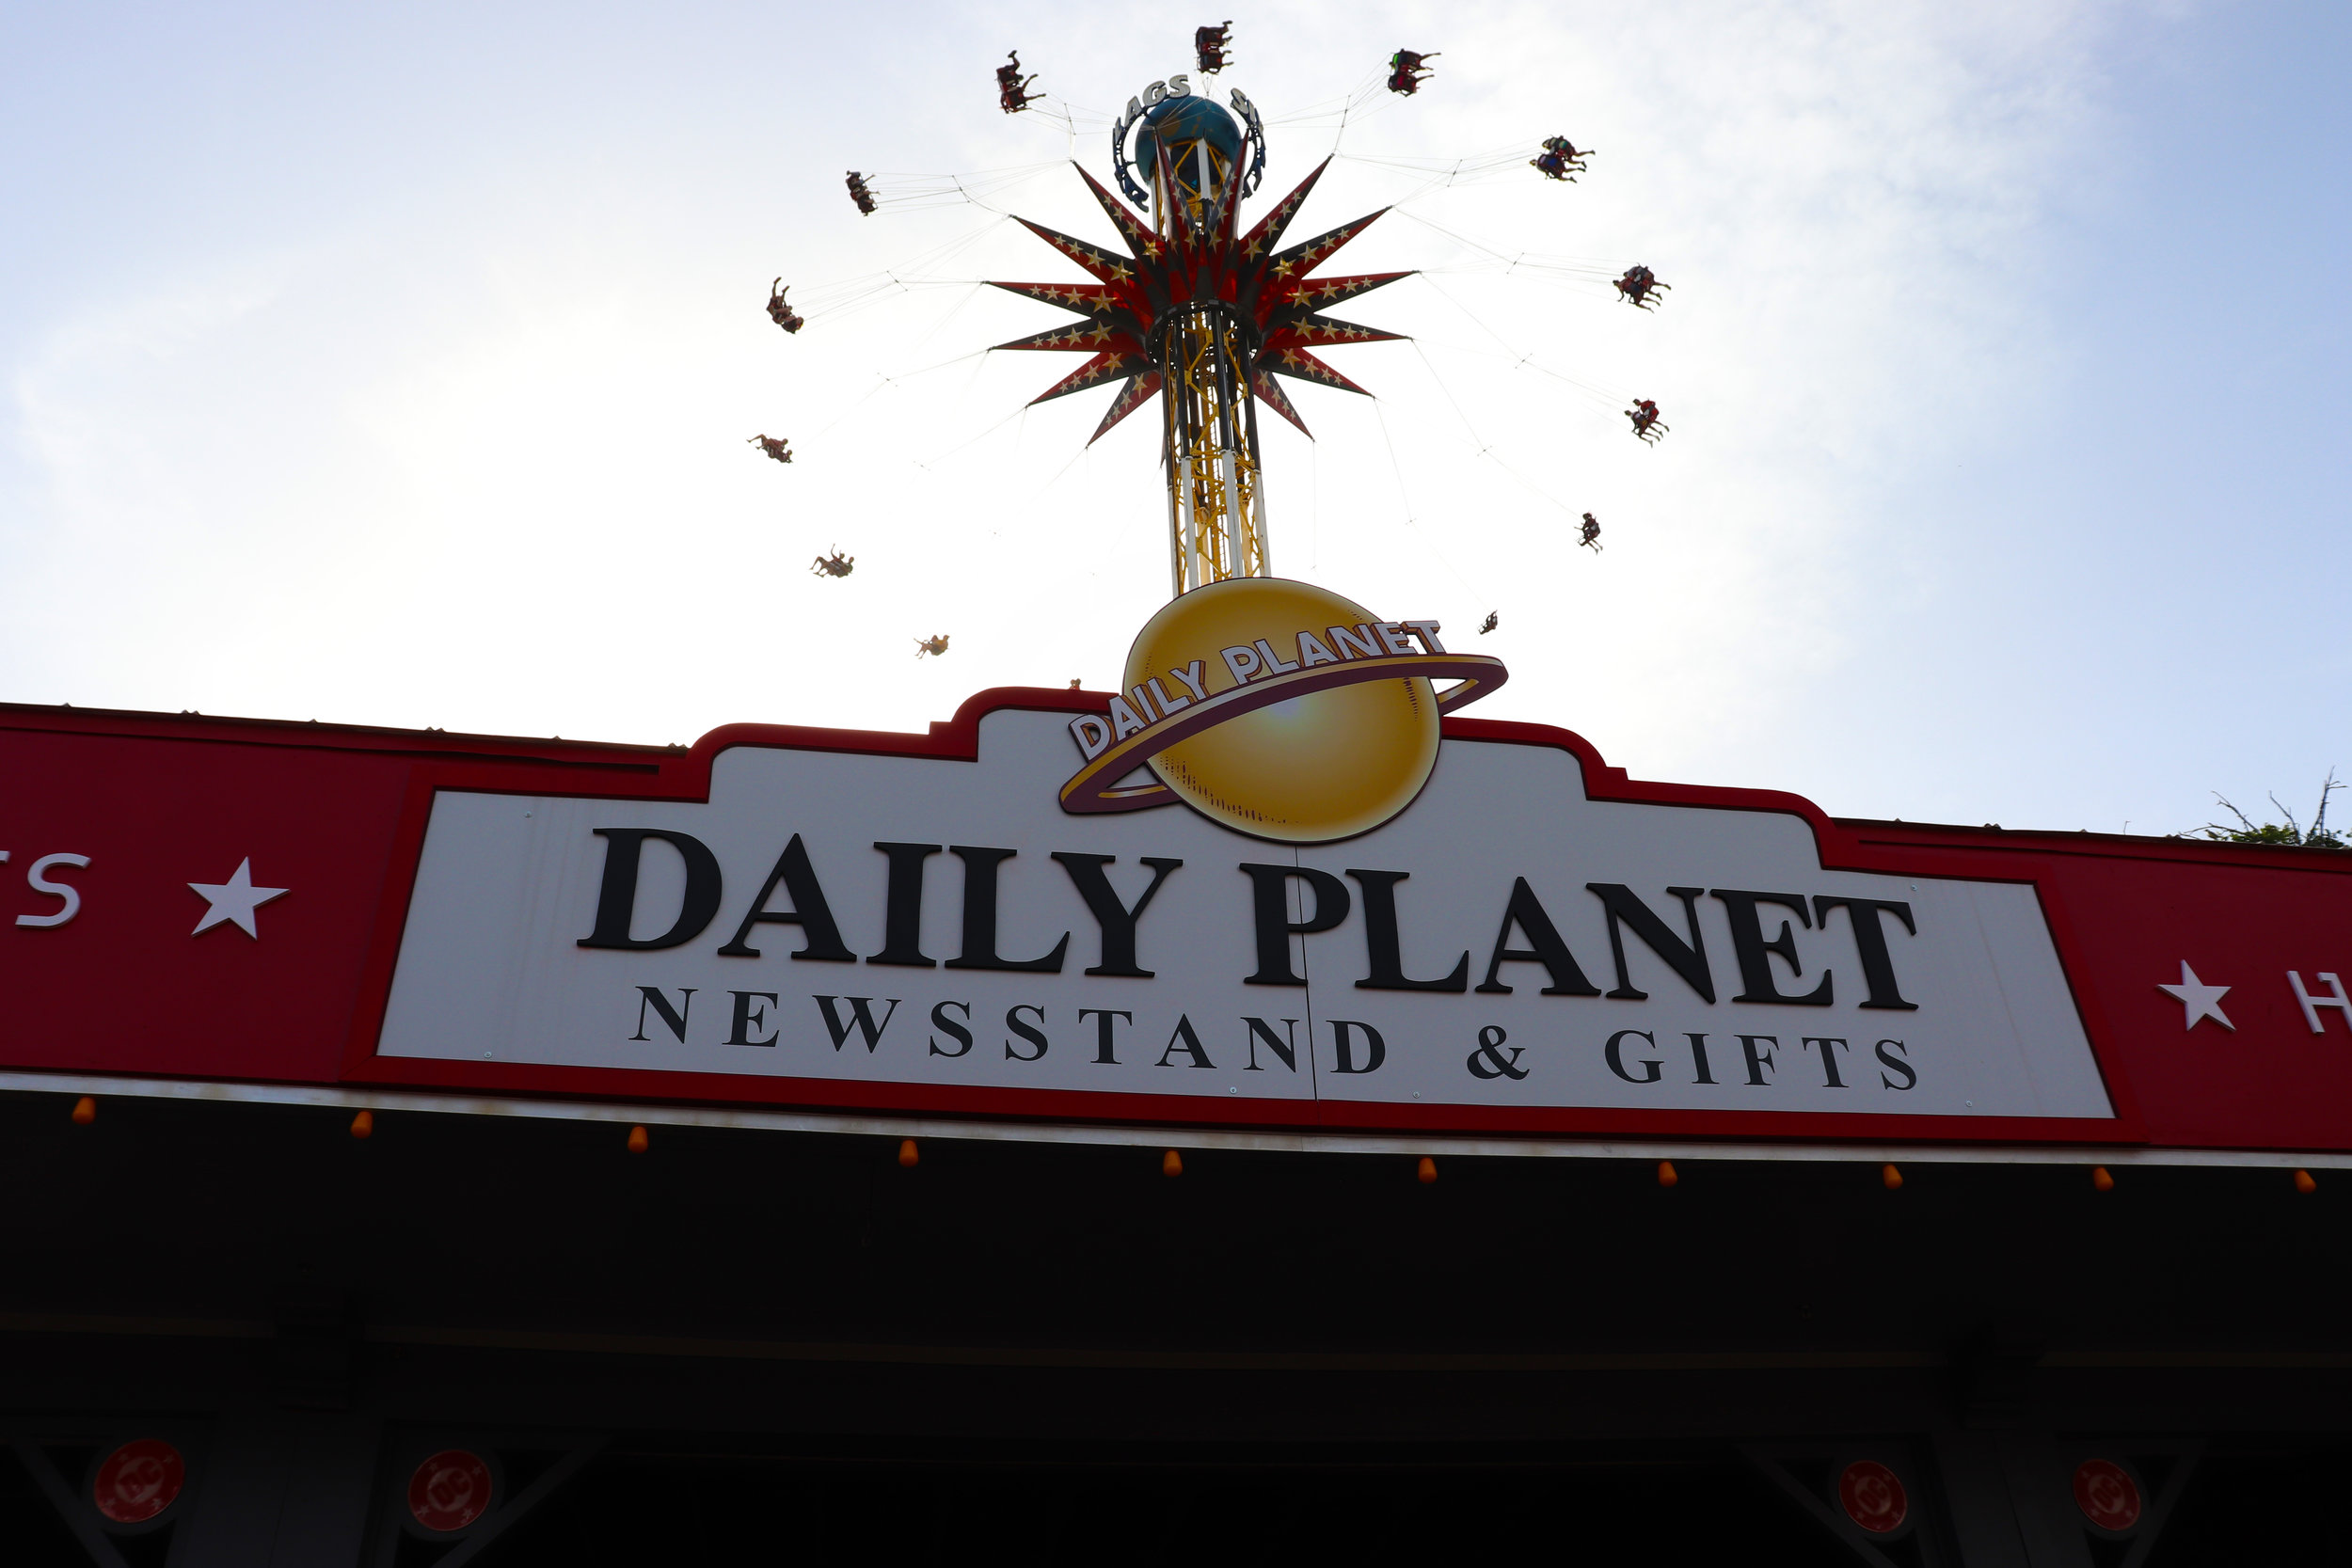 Daily Planet Gifts